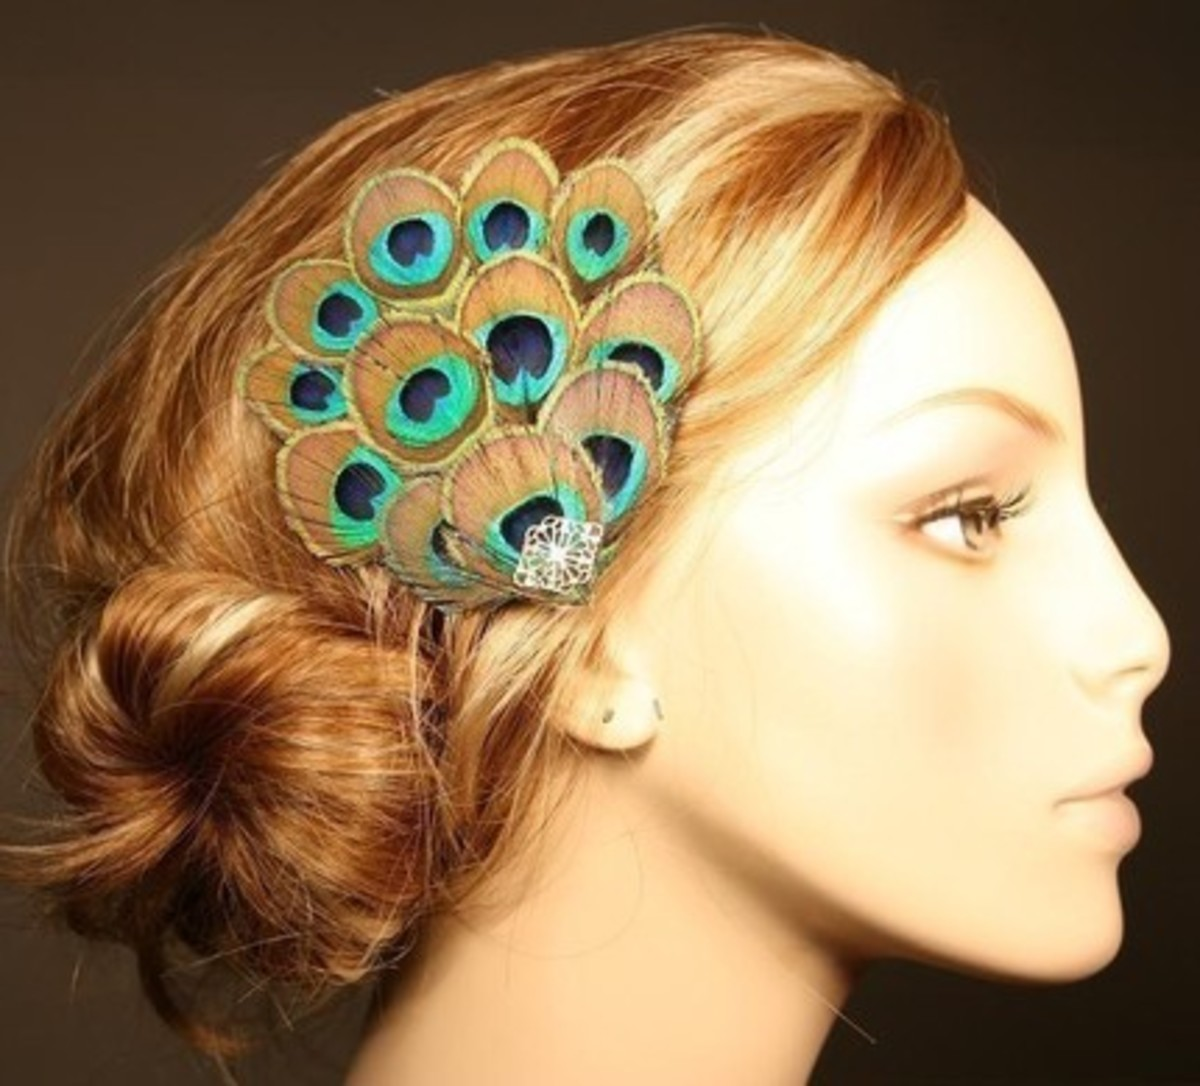 You can easily create this using small peacock feathers and a clip.